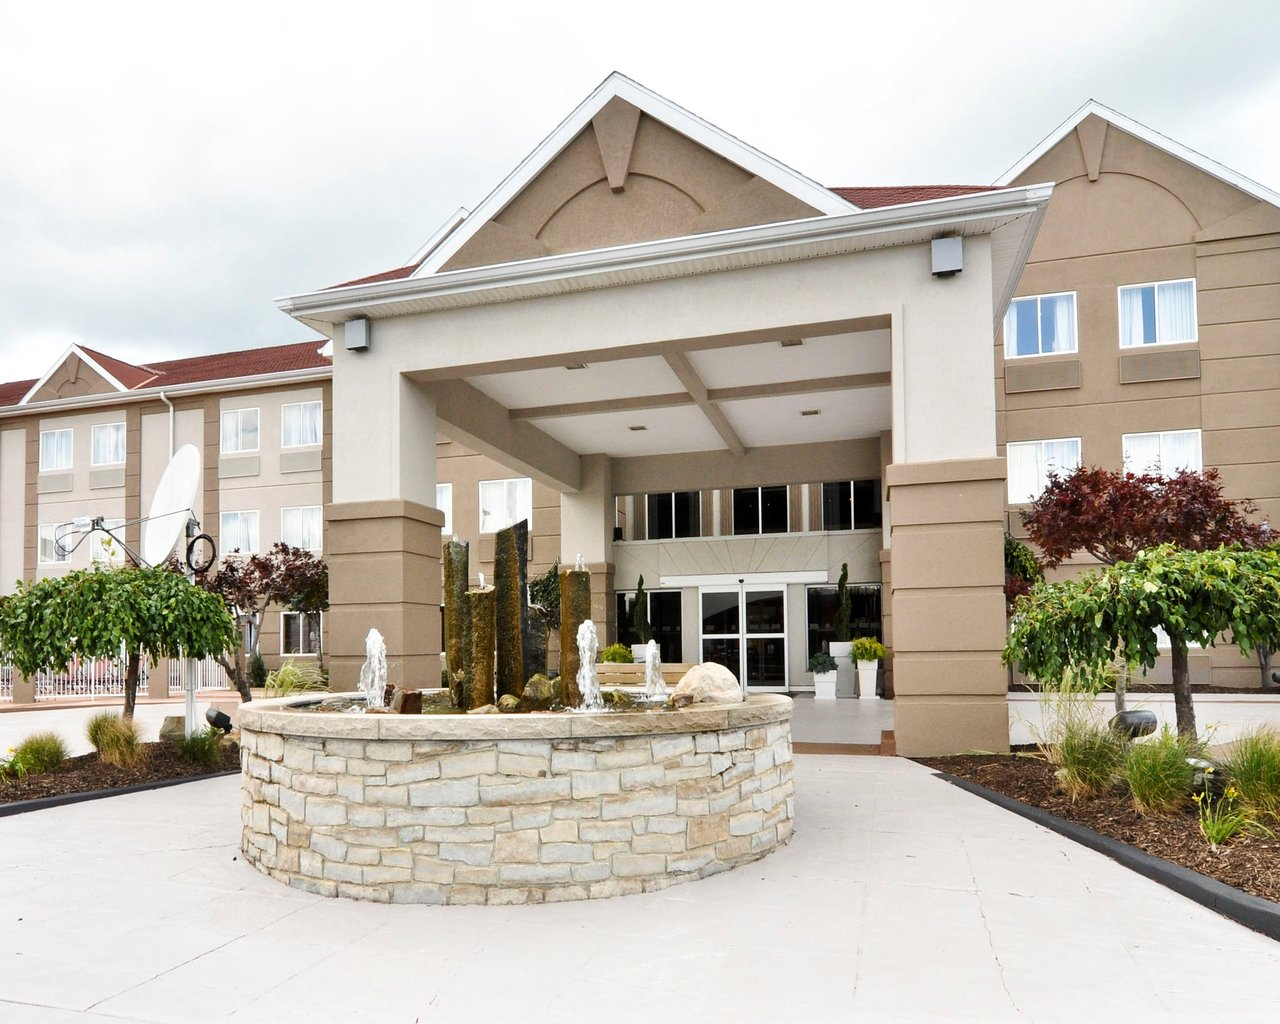 THE BEST Port Clinton Hotels on the Lake - Sept 2019 (with